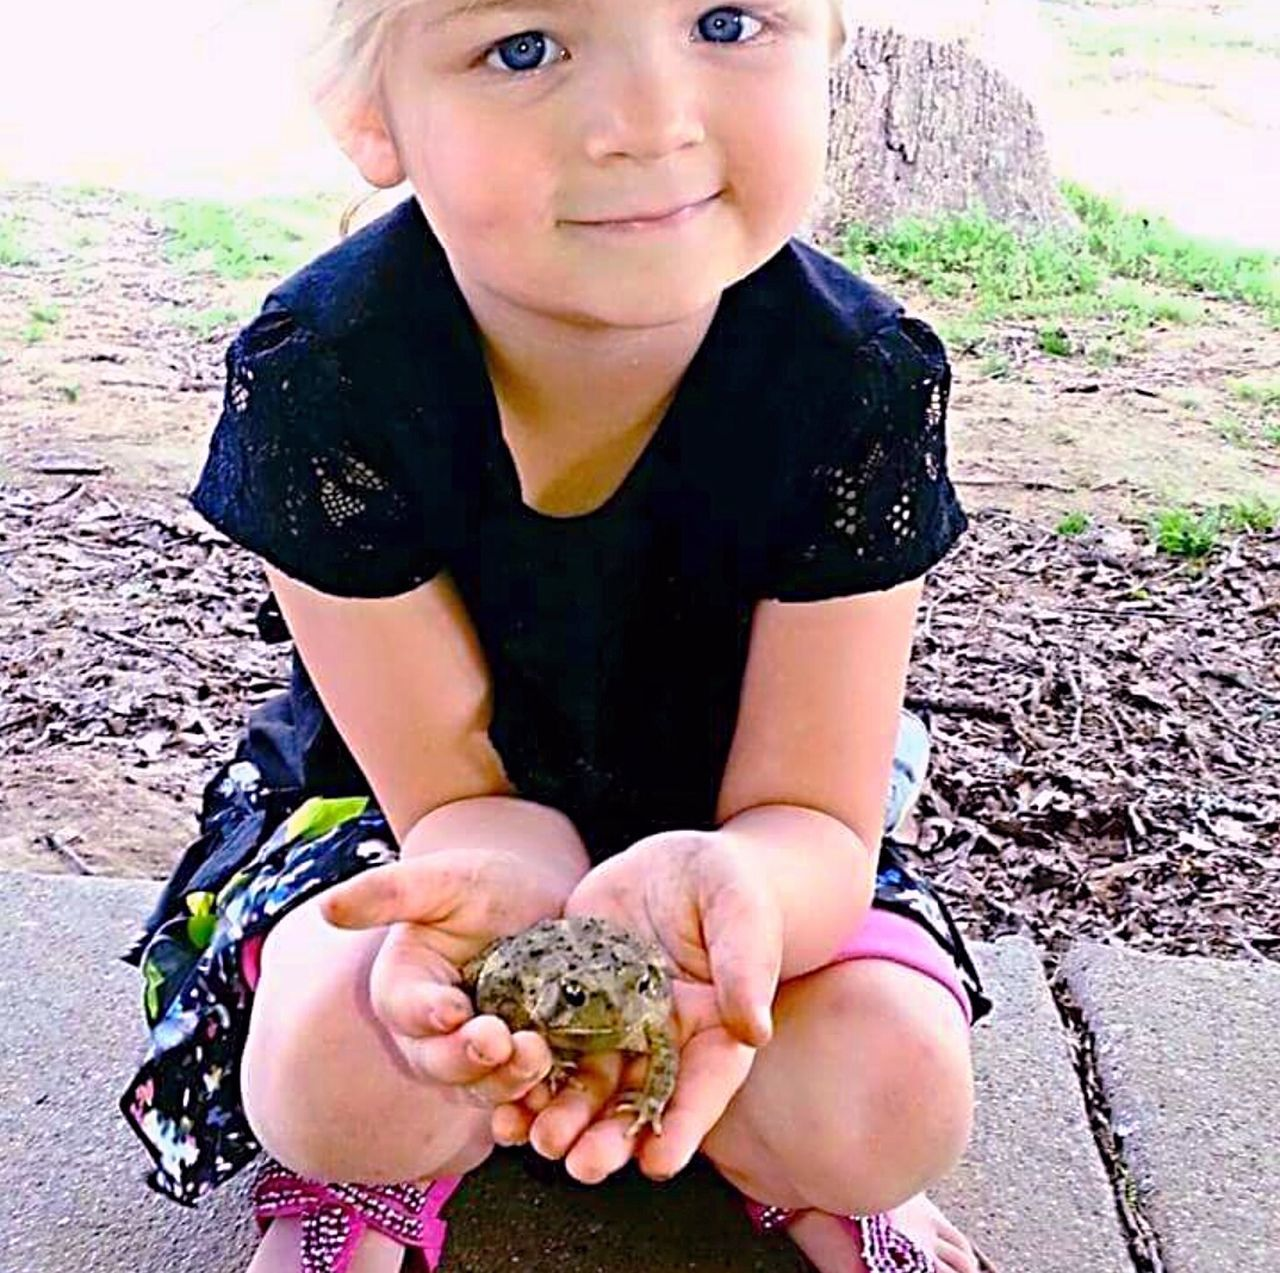 My Grand daughter and Prince Charming. Lol! Child Portrait Girls Human Body Part One Girl Only Looking At Camera One Person Childhood Children Only People Human Hand Outdoors Smiling Happiness Real People Nature Day Frog Nature Toad One Animal Animal Themes